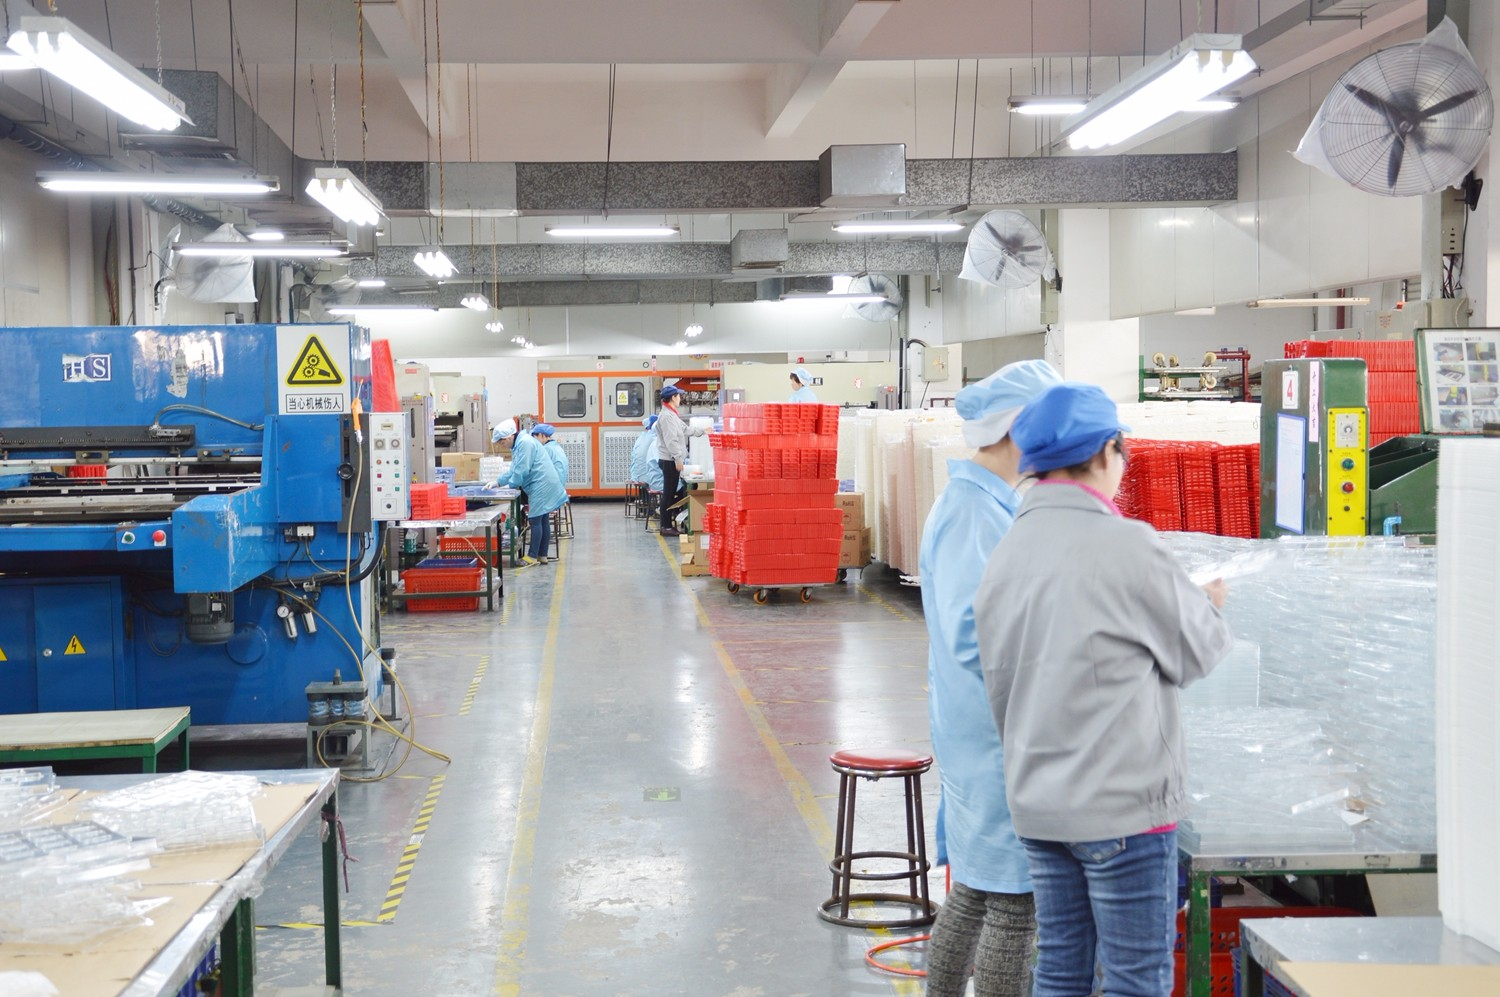 Inside the factory